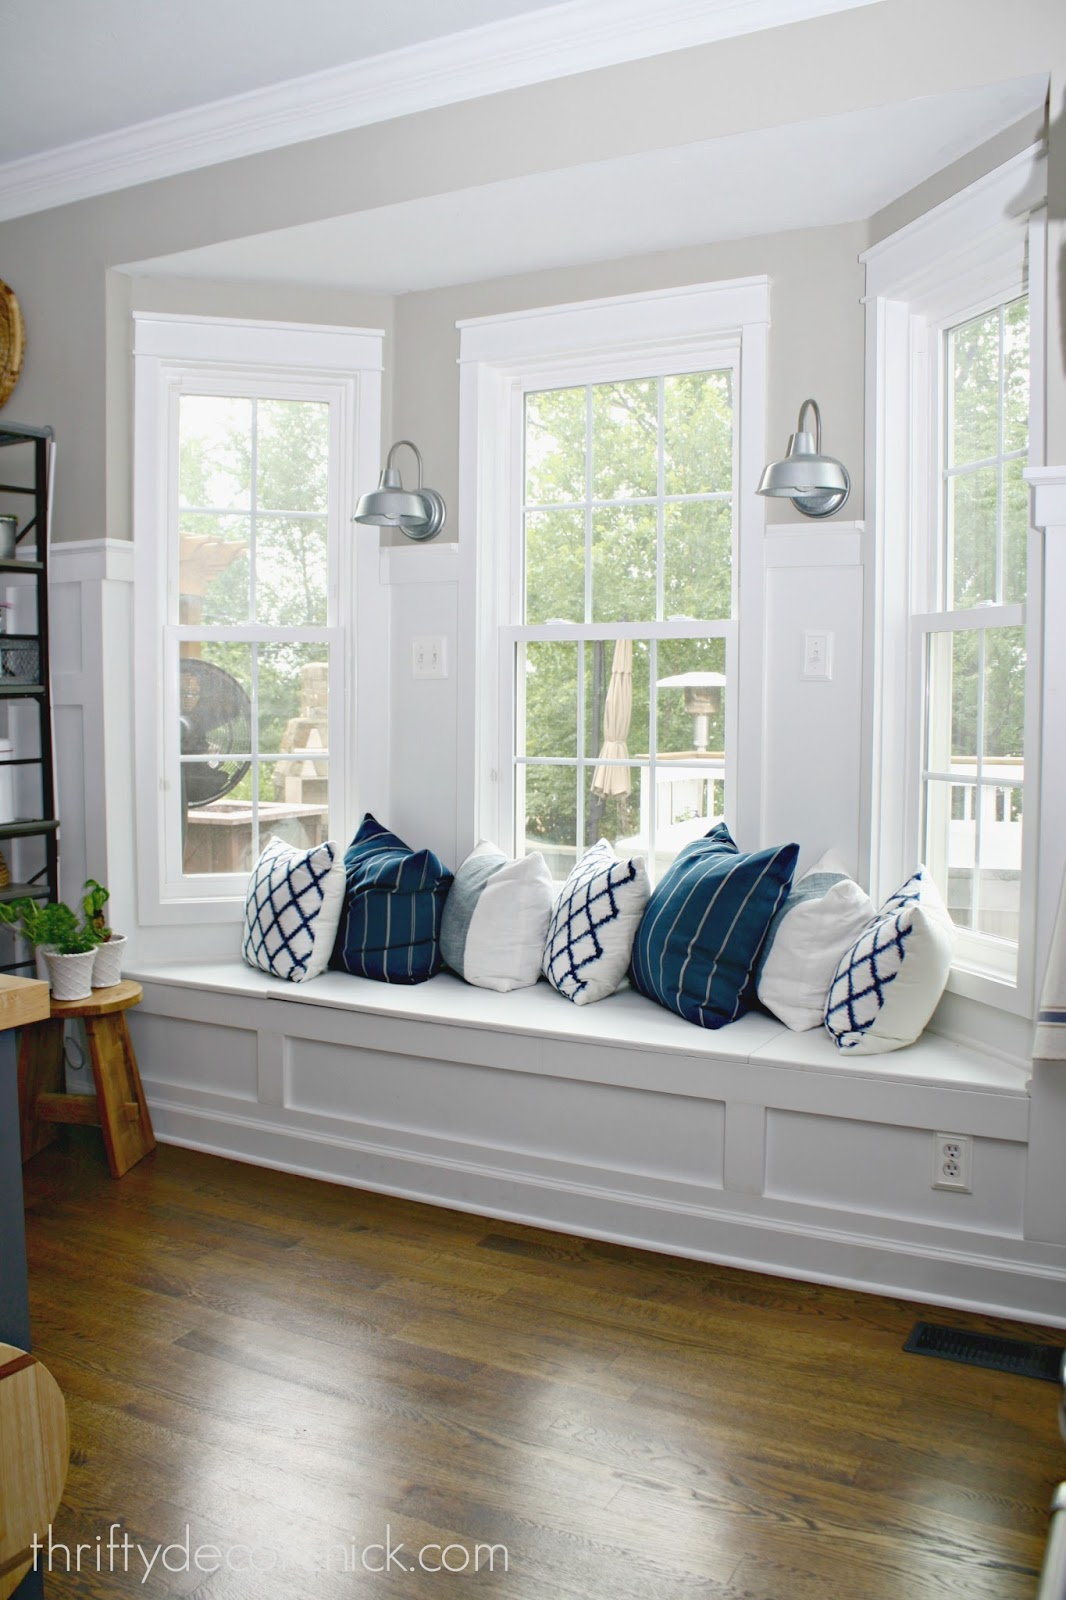 window seat in bay window